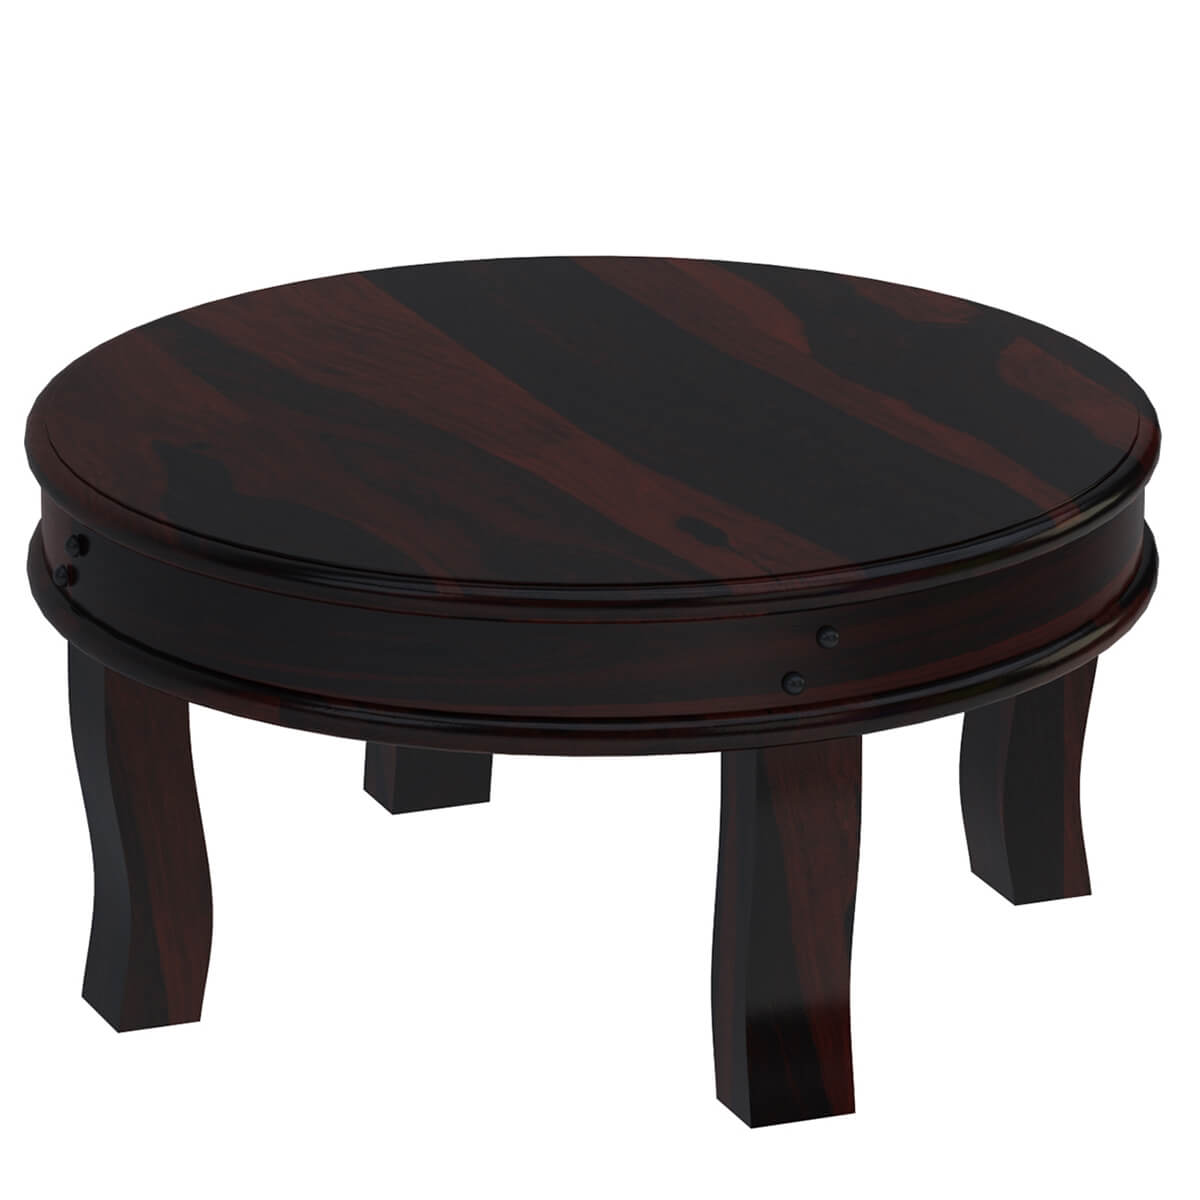 Full moon solid wood 36 round coffee table for Solid wood coffee table